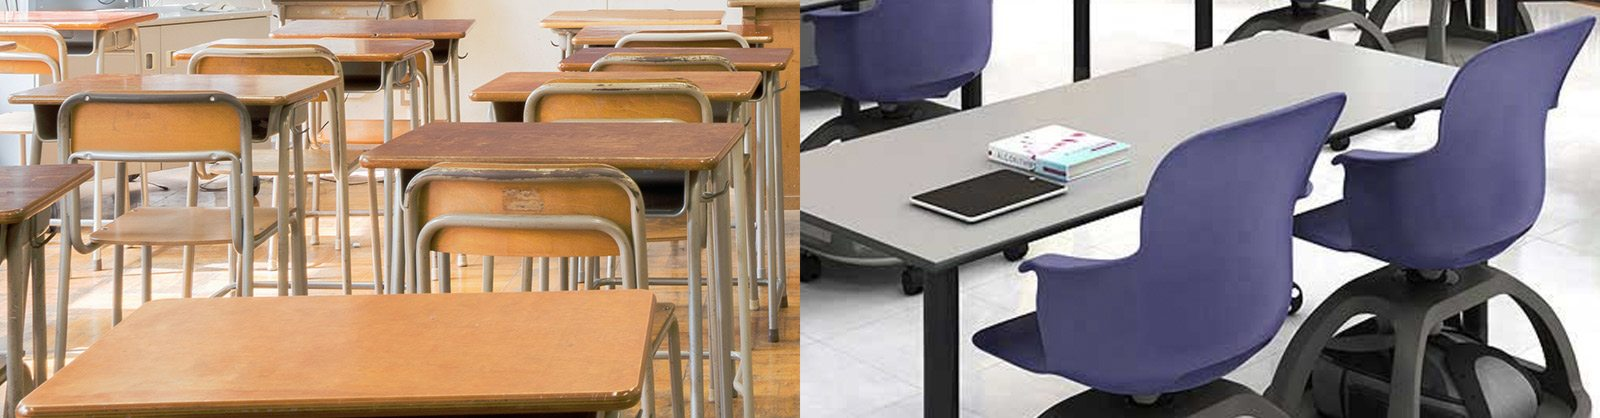 The Incredible Classroom Makeover